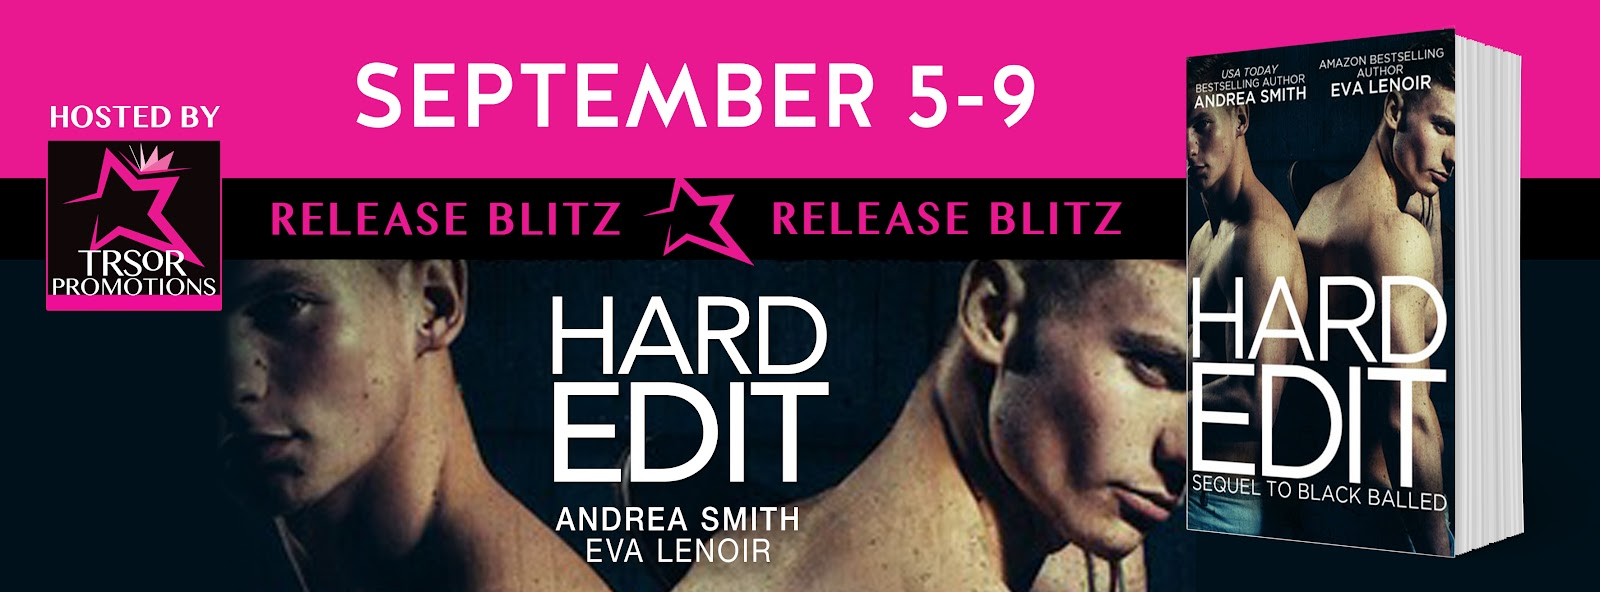 HARD_EDIT_RELEASE_BLITZ.jpg